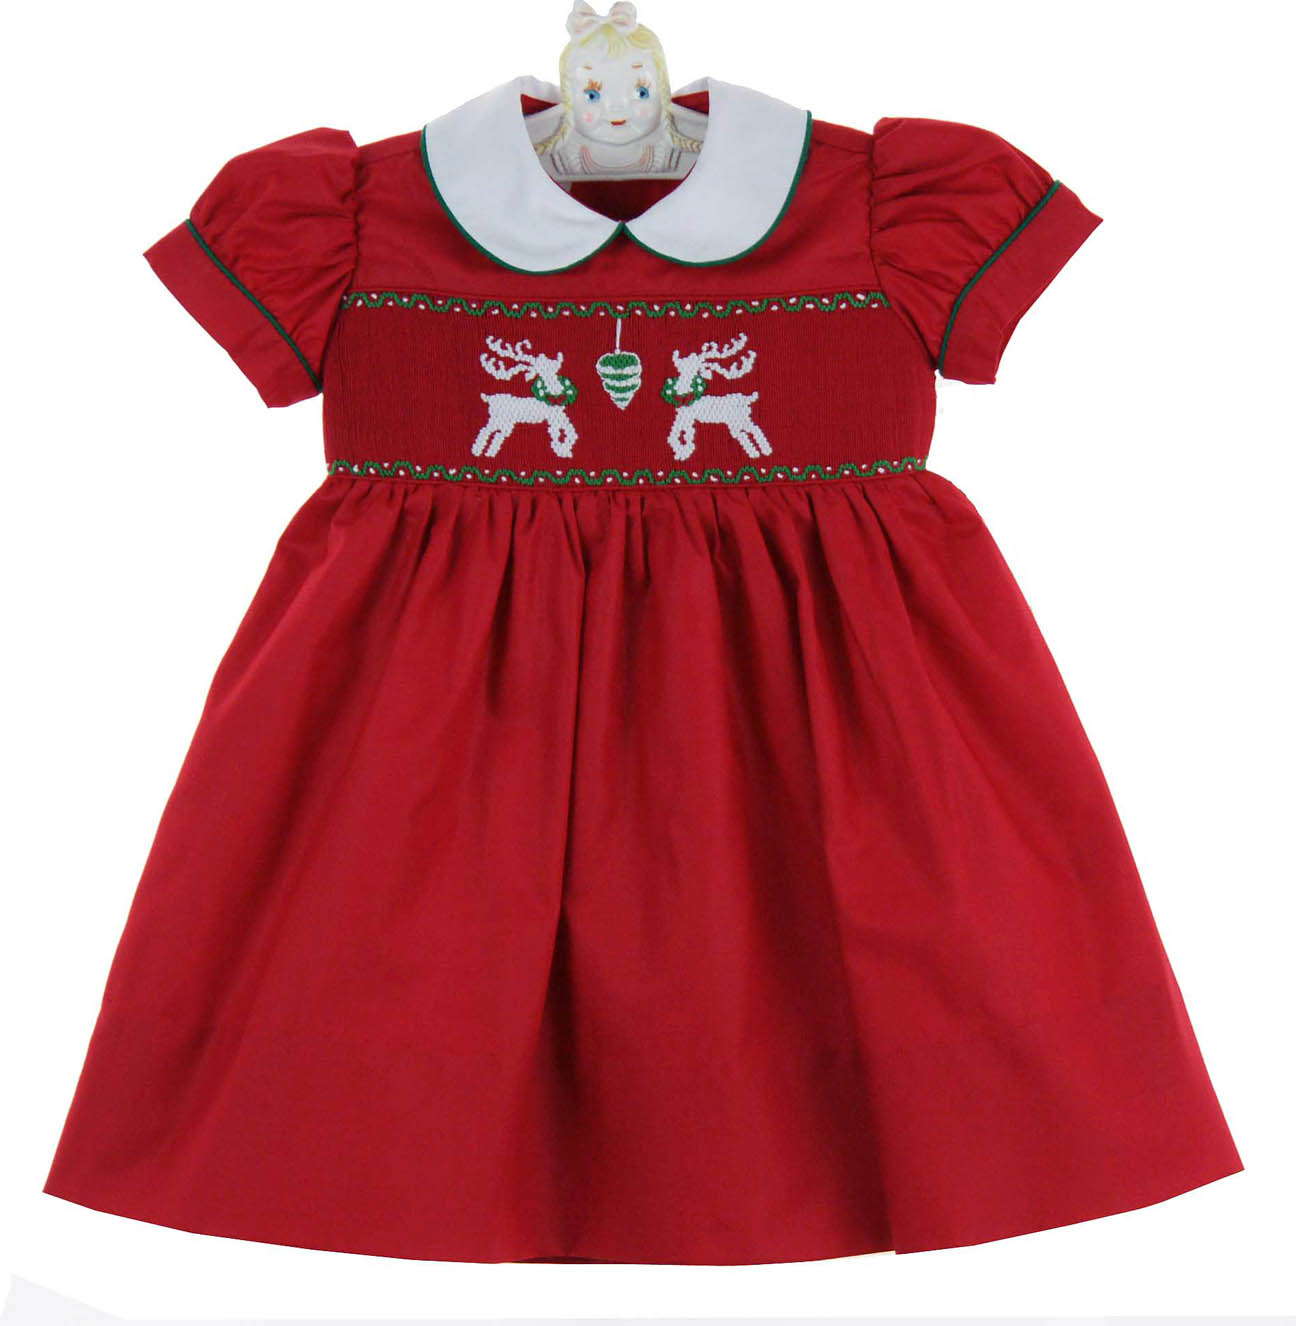 1282342e719a5 Marco & Lizzy red smocked dress with reindeer embroidery,red smocked ...